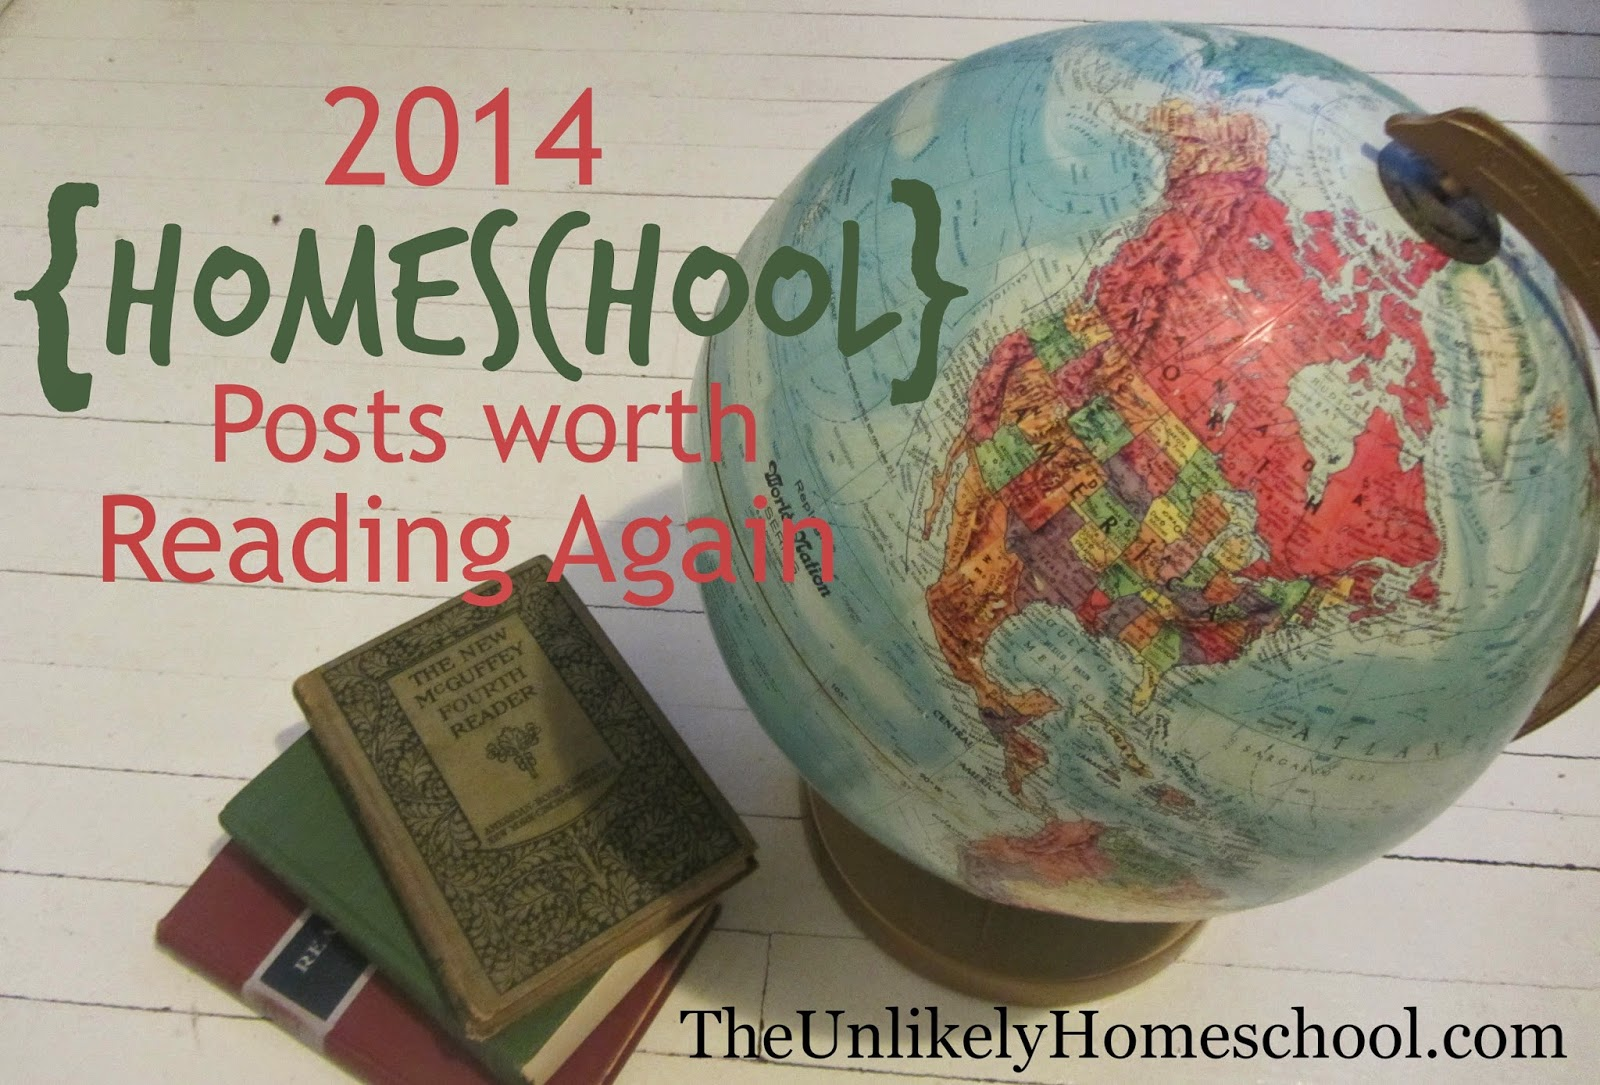 2014 Homeschool Posts Worth Reading Again {The Unlikely Homeschool}